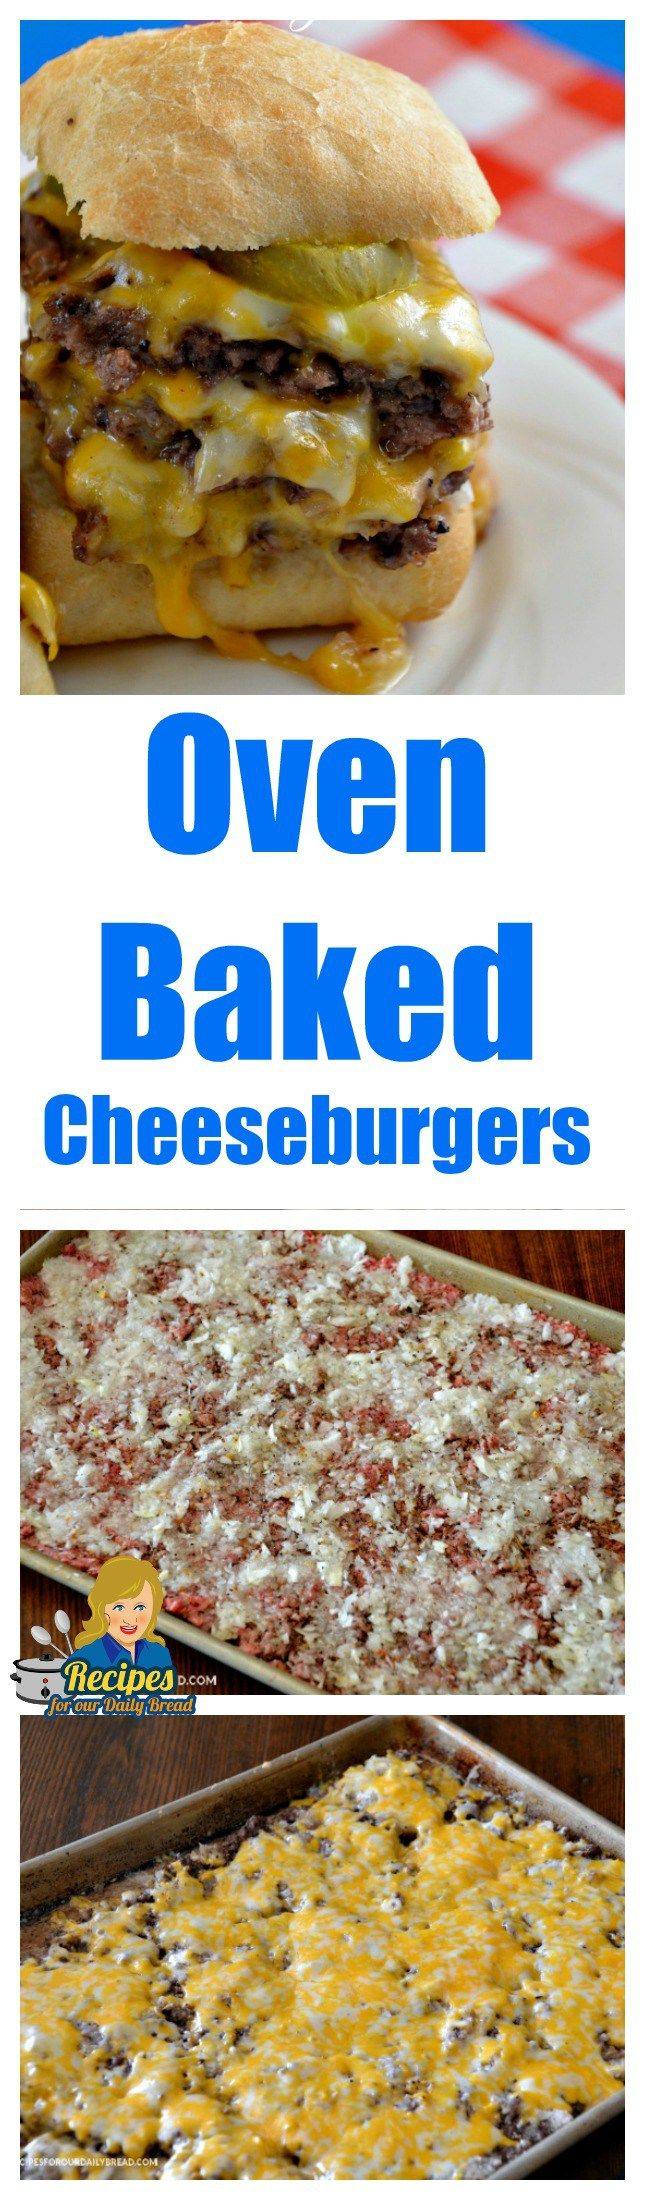 Do you enjoy Cheeseburgers from Krystals or White Castles? If so, you will love these cute, fun, delicious Oven Baked Cheeseburger Sliders.